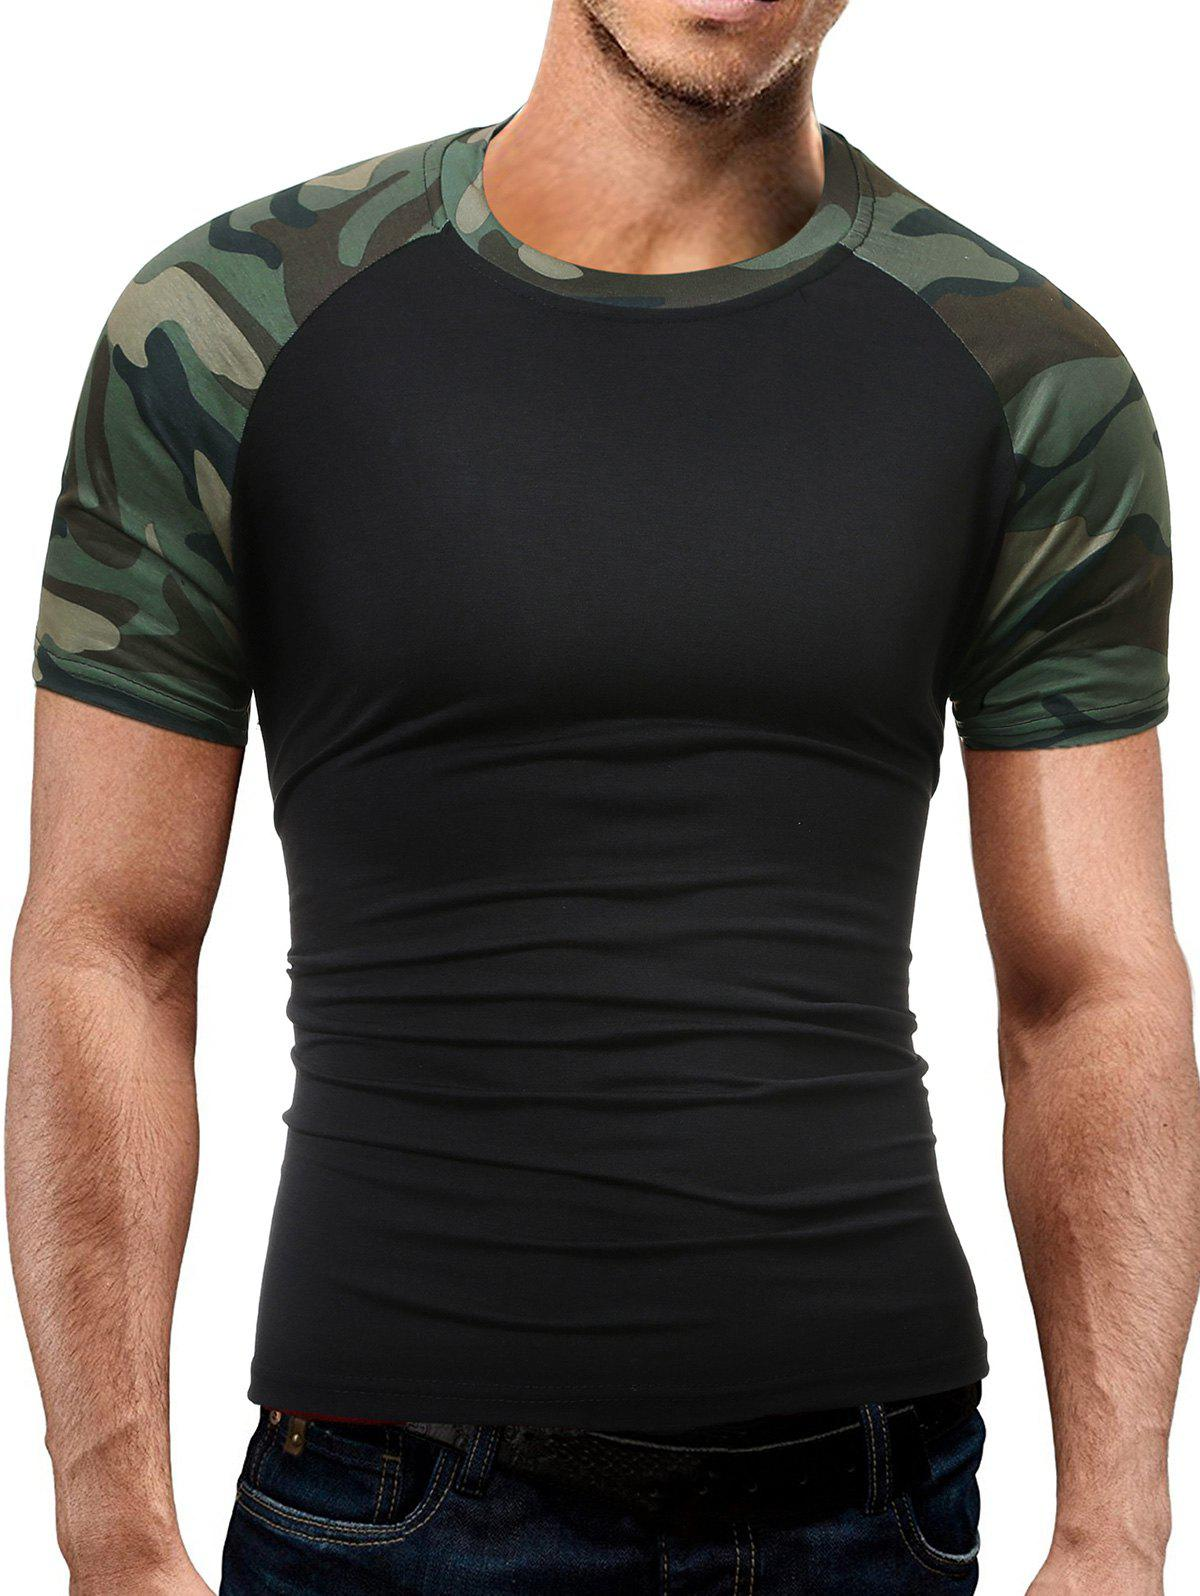 Strech Camo Print Panel Raglan Sleeve T-Shirt stripe panel raglan sleeve t shirt